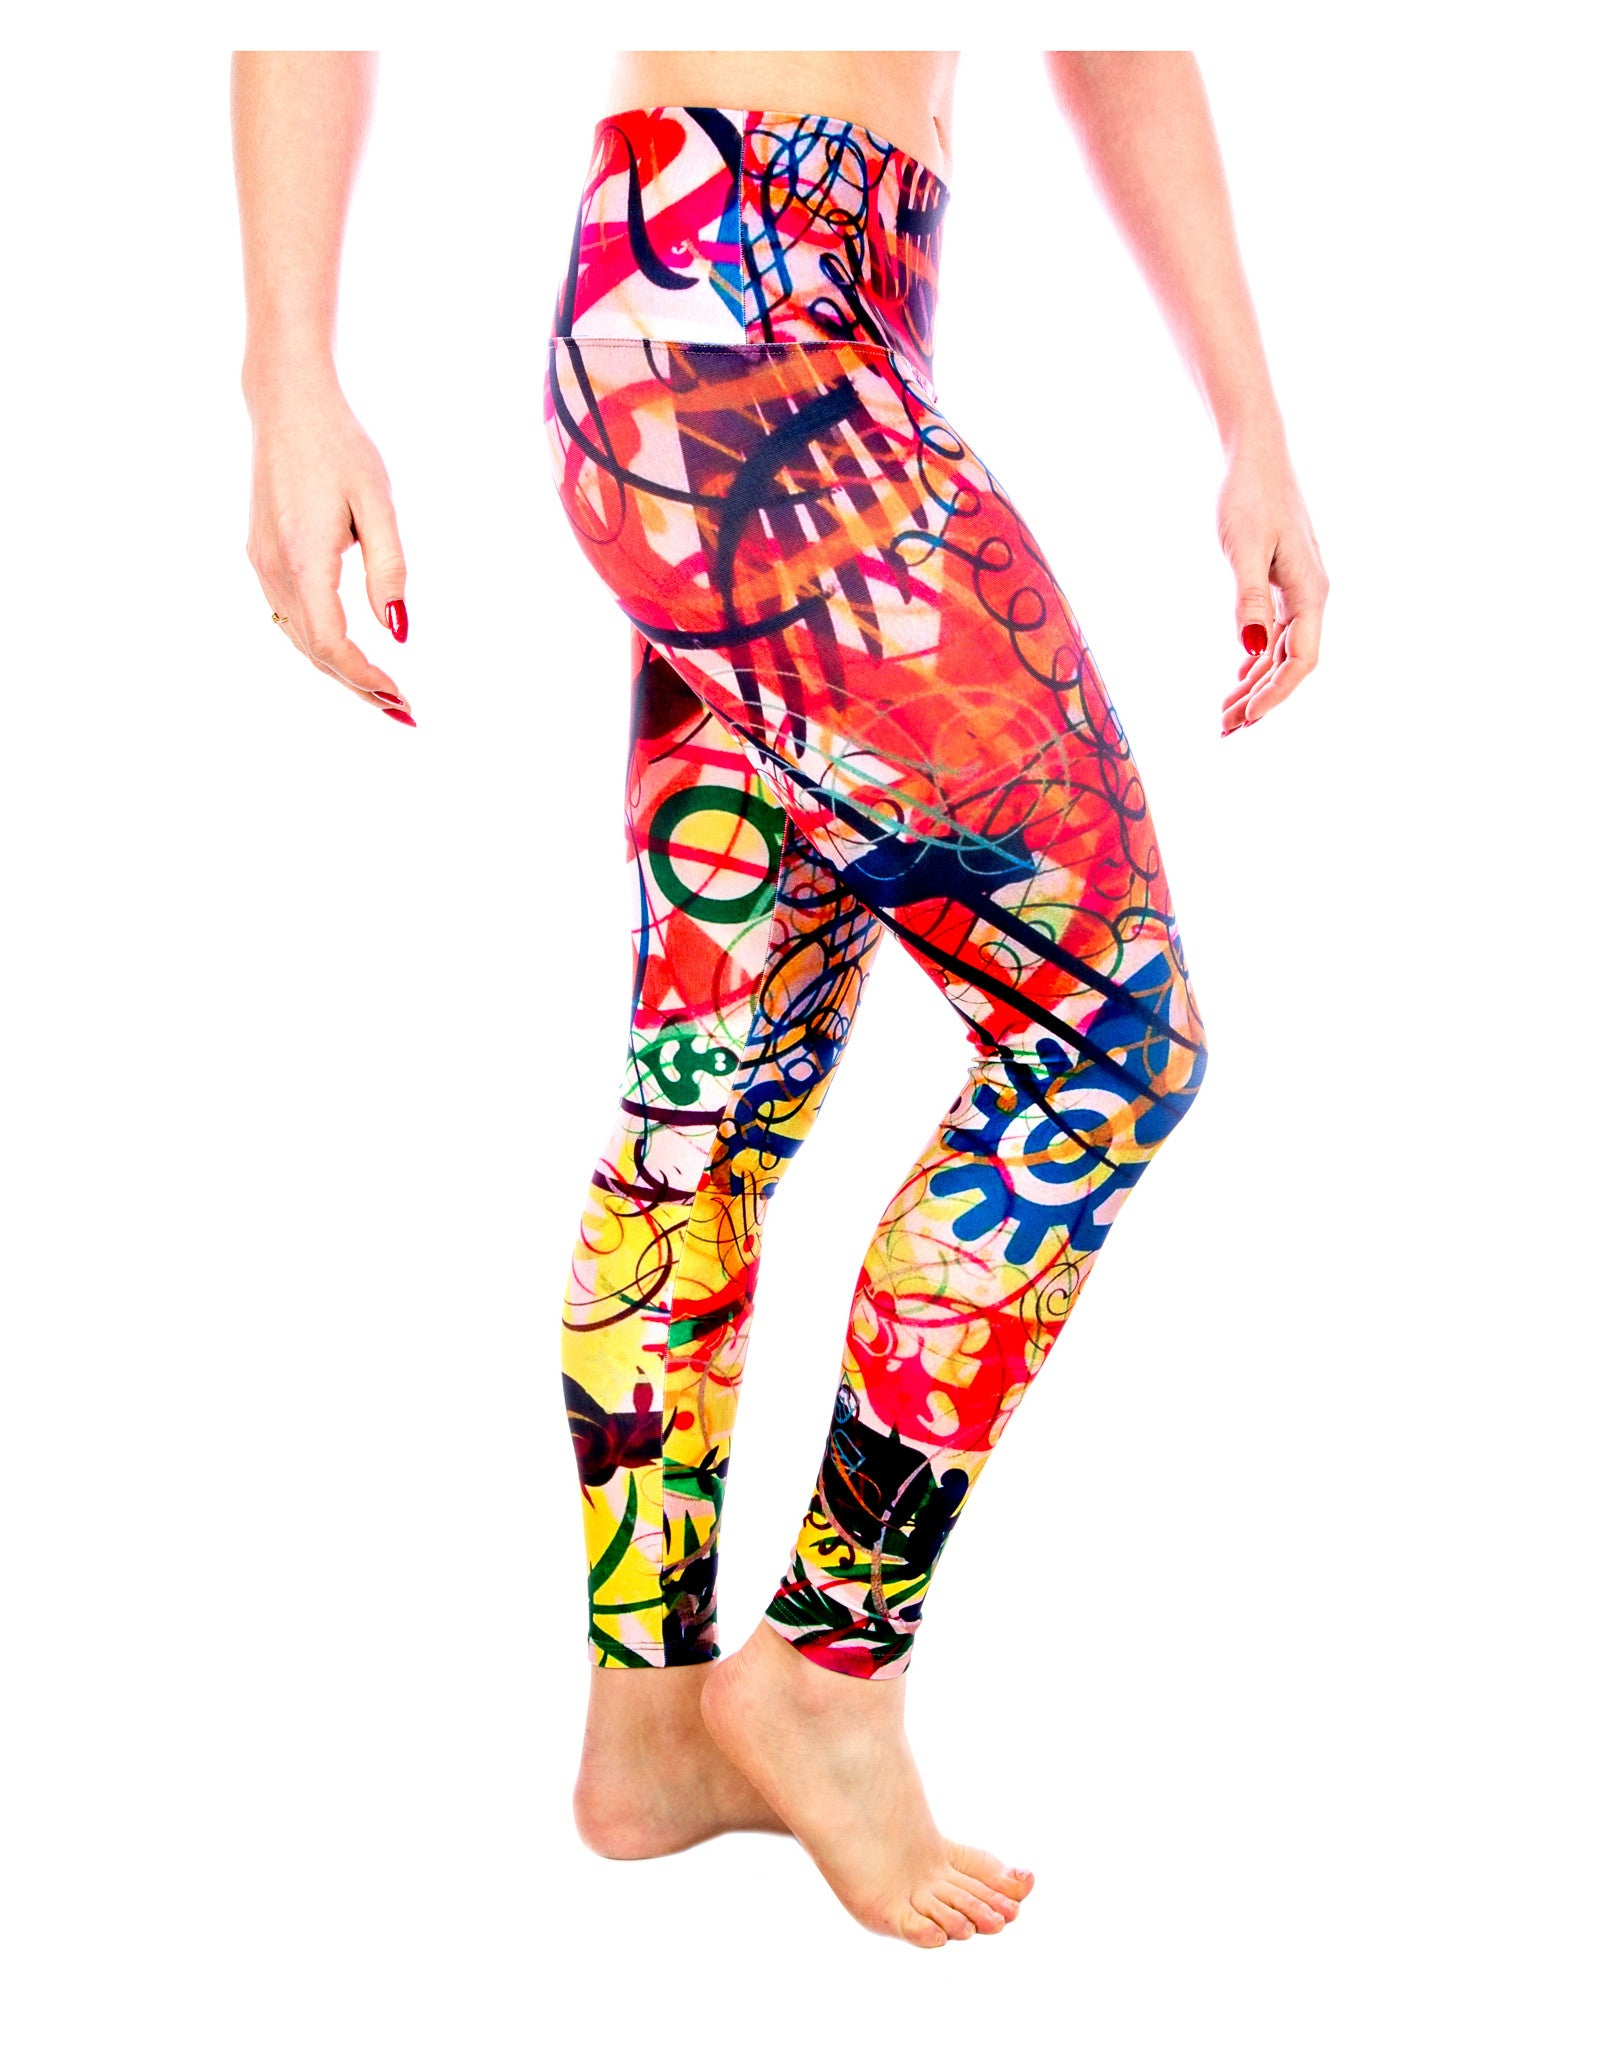 d1dc131918607 Yoga Pants- Doodle Legging from the Color Me Beautiful Yoga Pants Collection  by LavaLoka ...